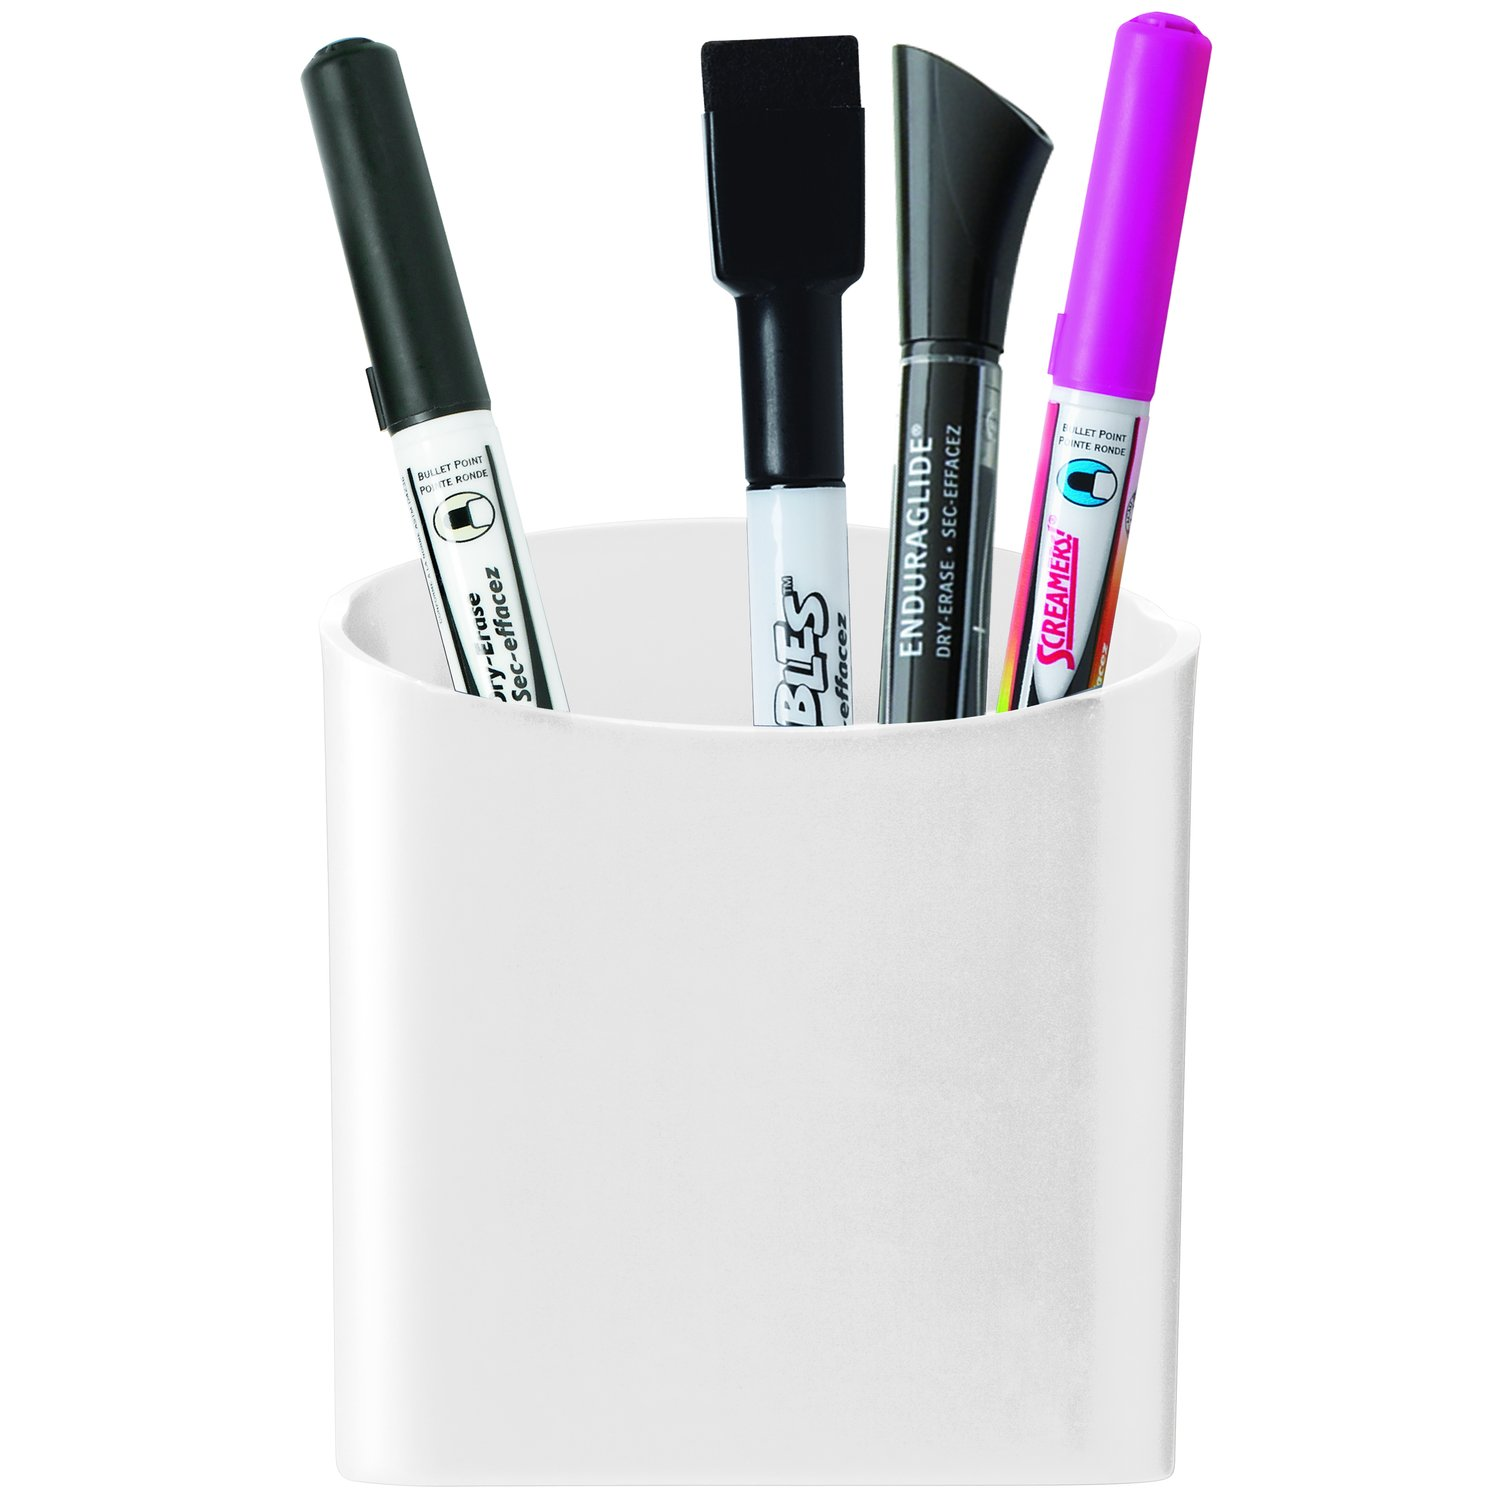 Amazon.com : Quartet Magnetic Pen and Pencil Cup Holder, White (48120-WT) :  Office Supplies Organizers : Office Products